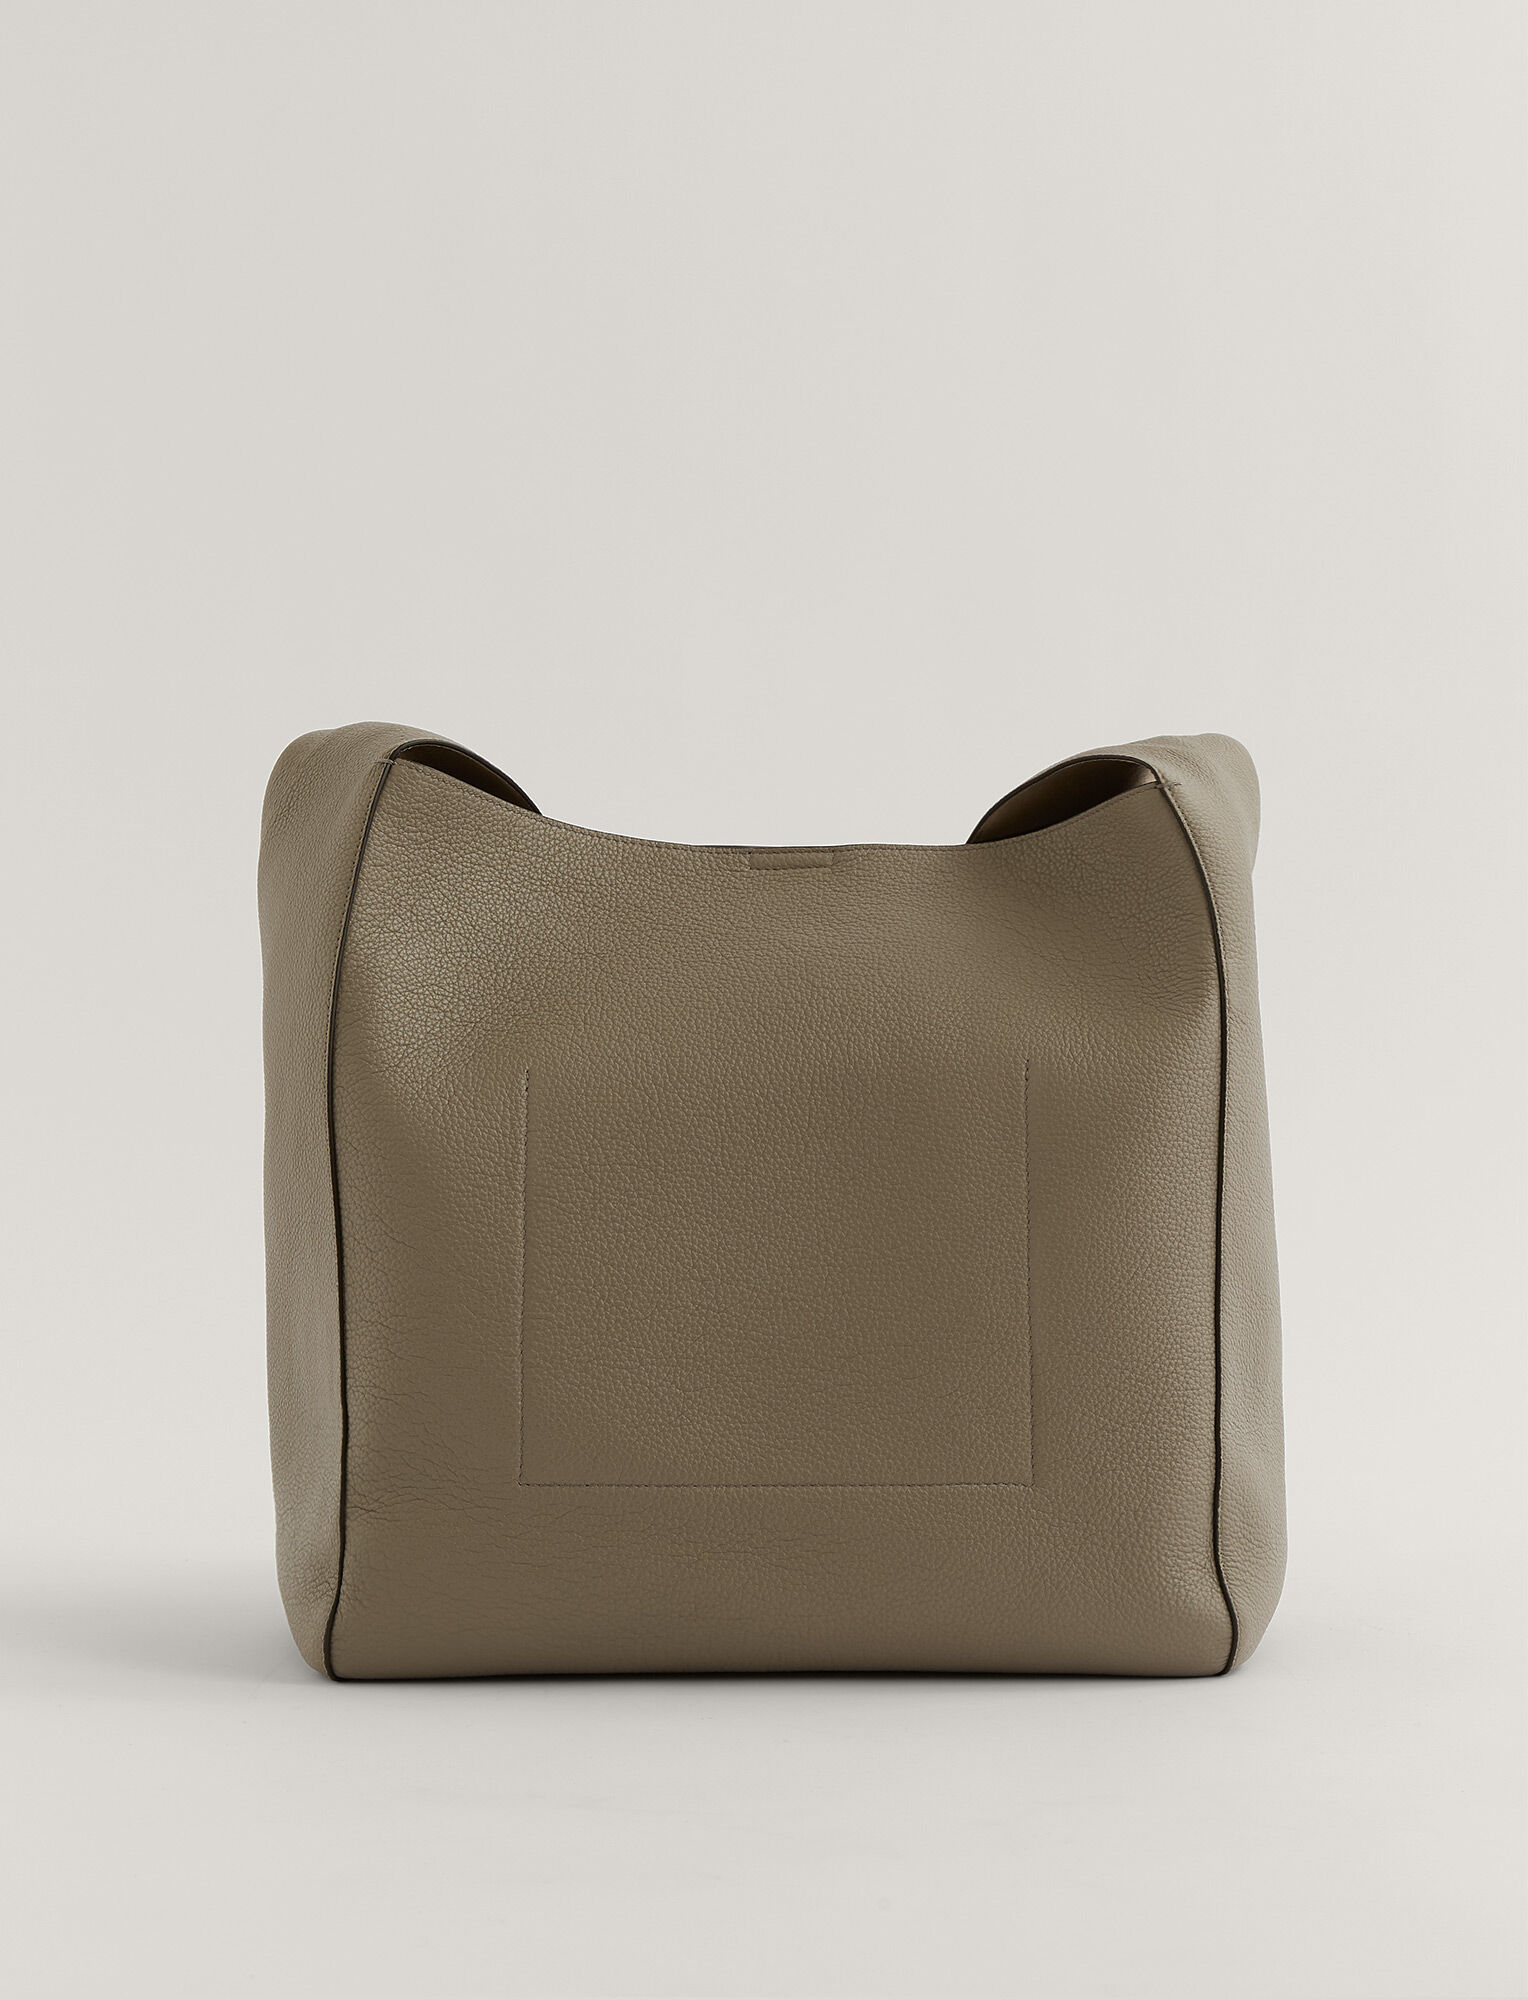 Joseph, Slouch XL Grain Leather Bag, in Grey